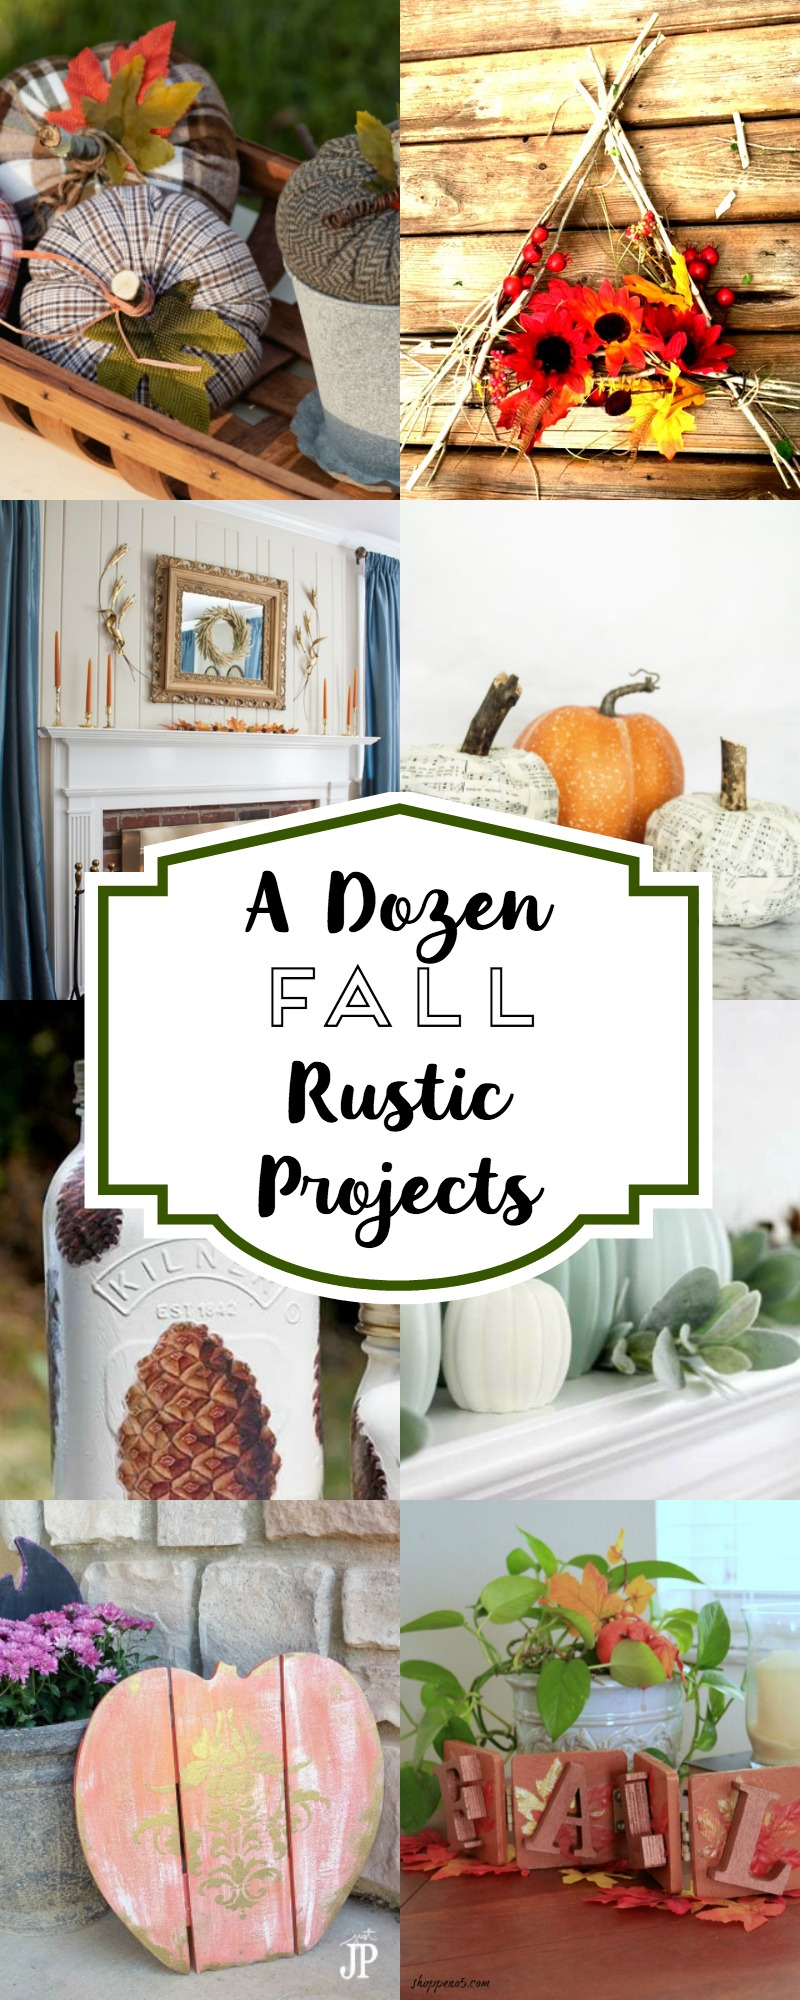 A Dozen Fall Rustic Projects